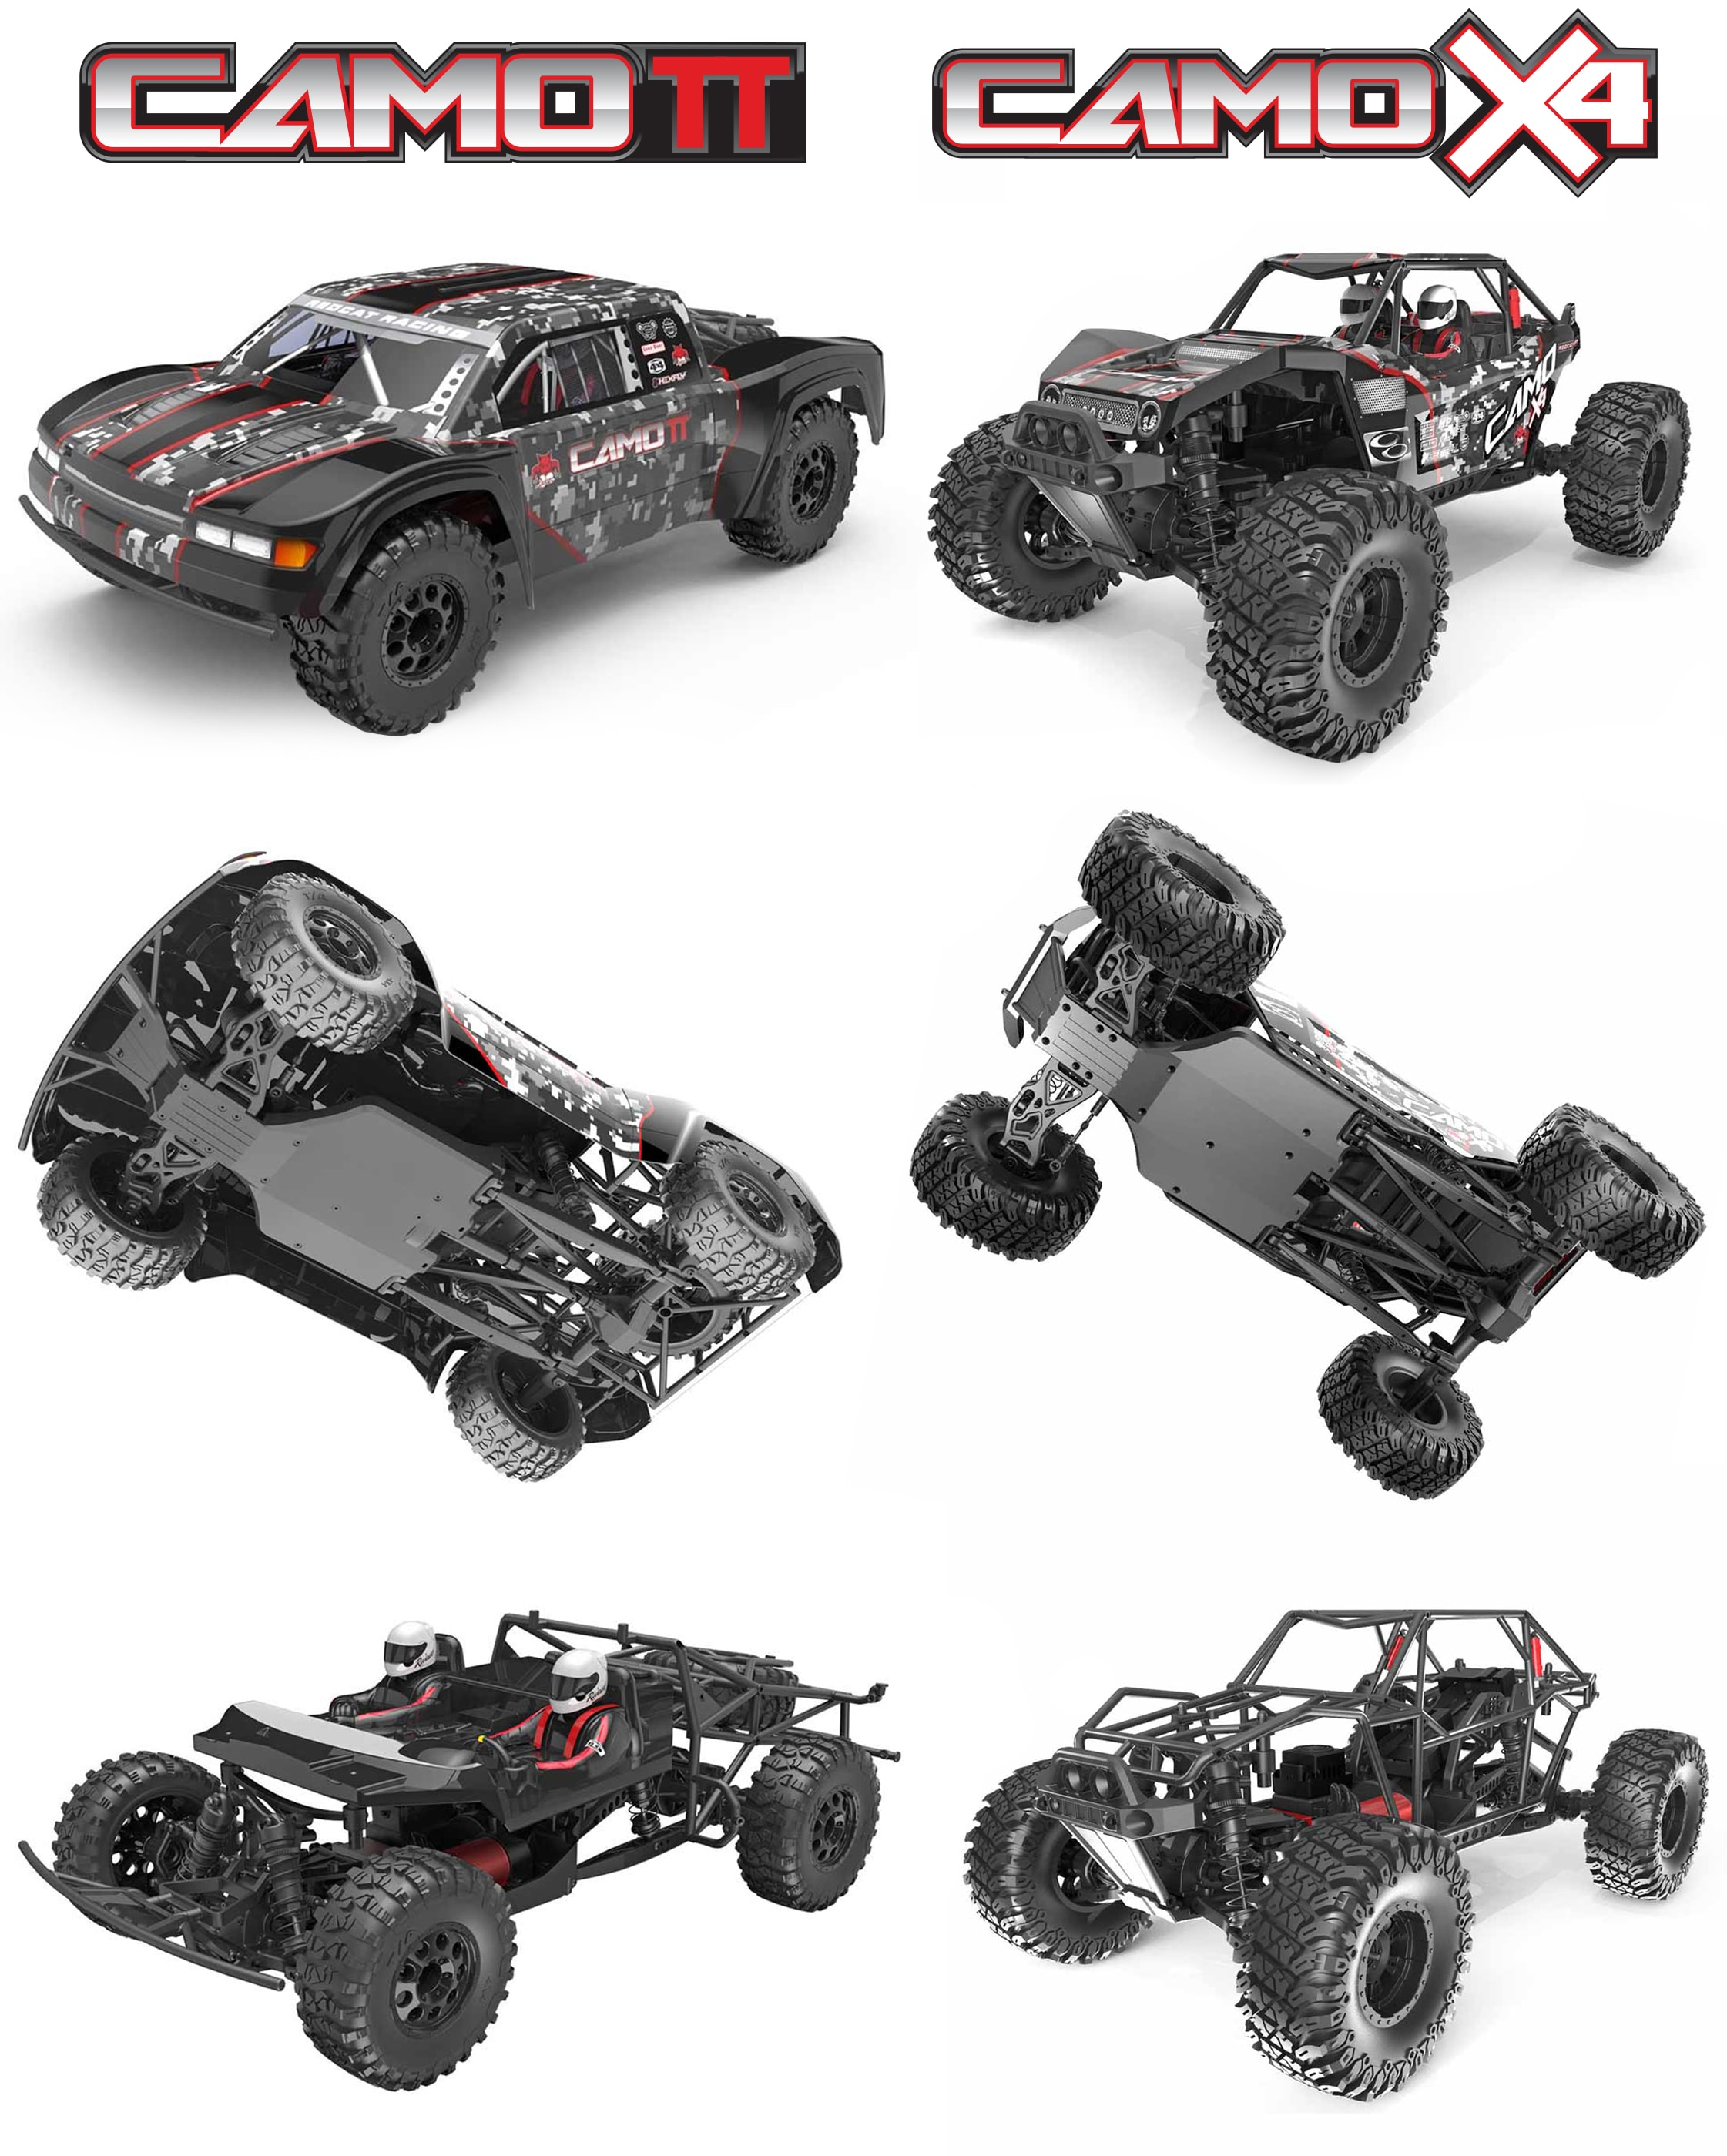 Redcat Racing Camo-X4 and Camo-TT Side-by-Side